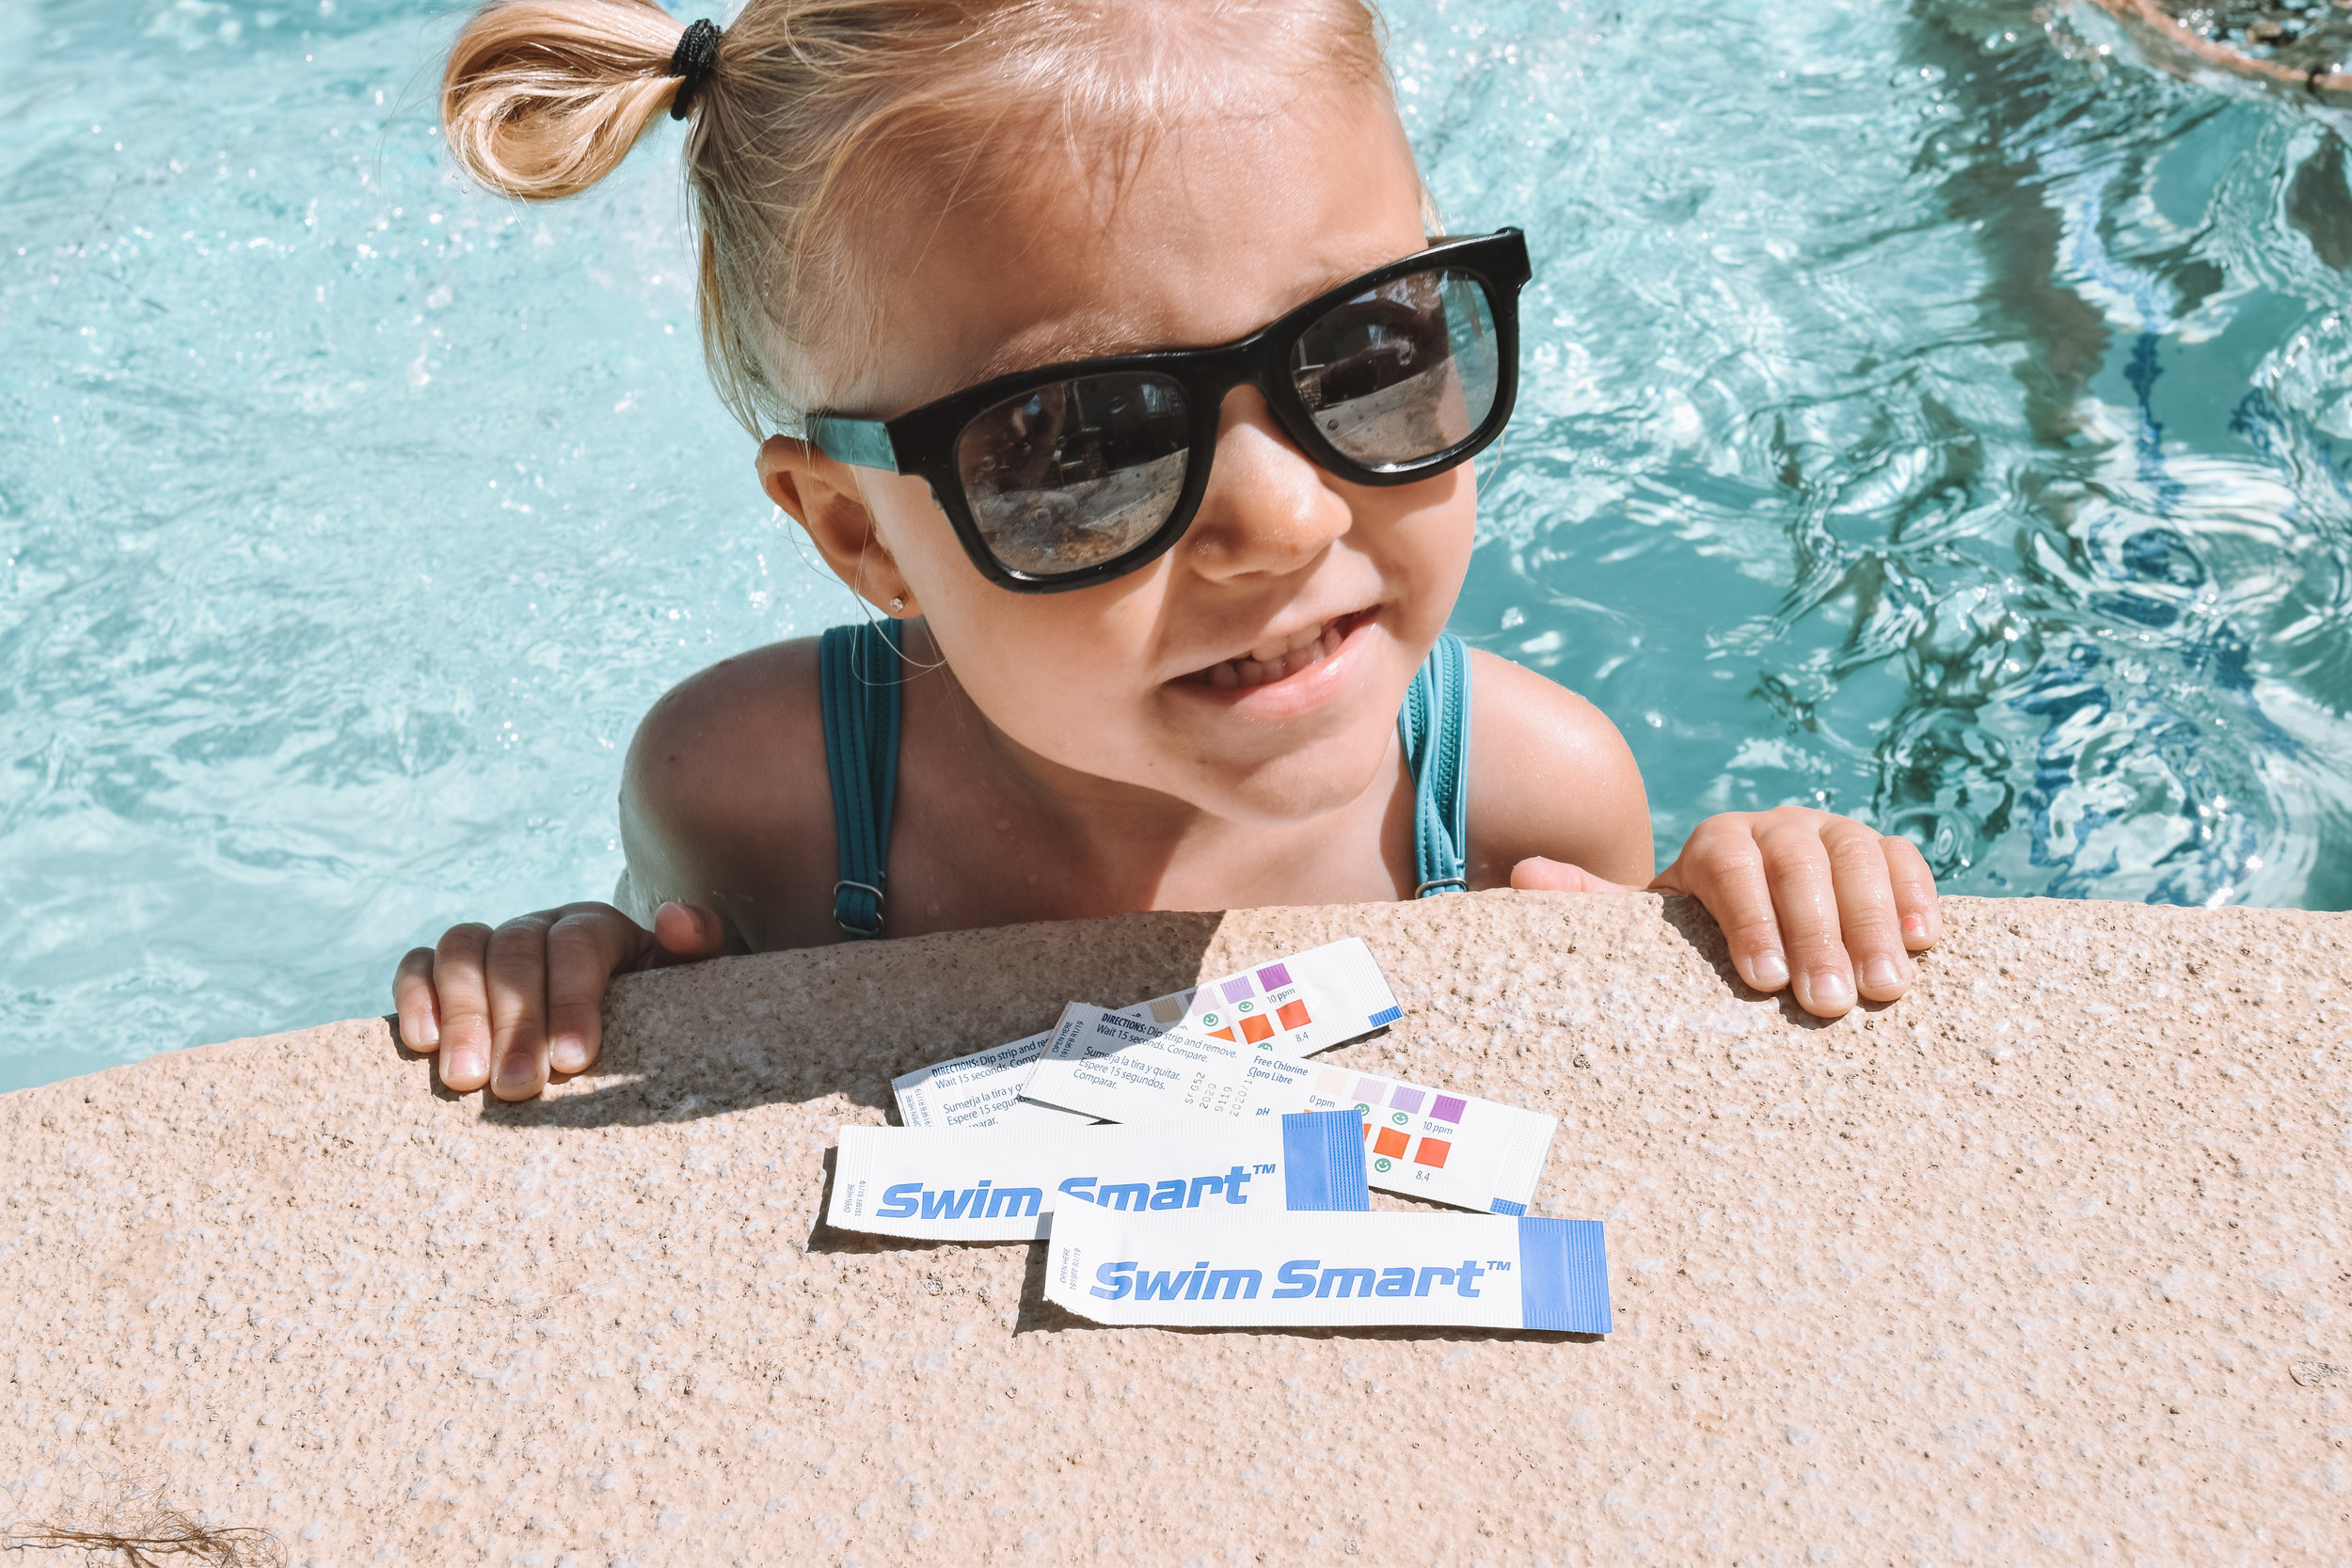 Check Public Pool Water Test Strips - Swim Smart Aquacheck - The Overwhelmed Mommy Blogger